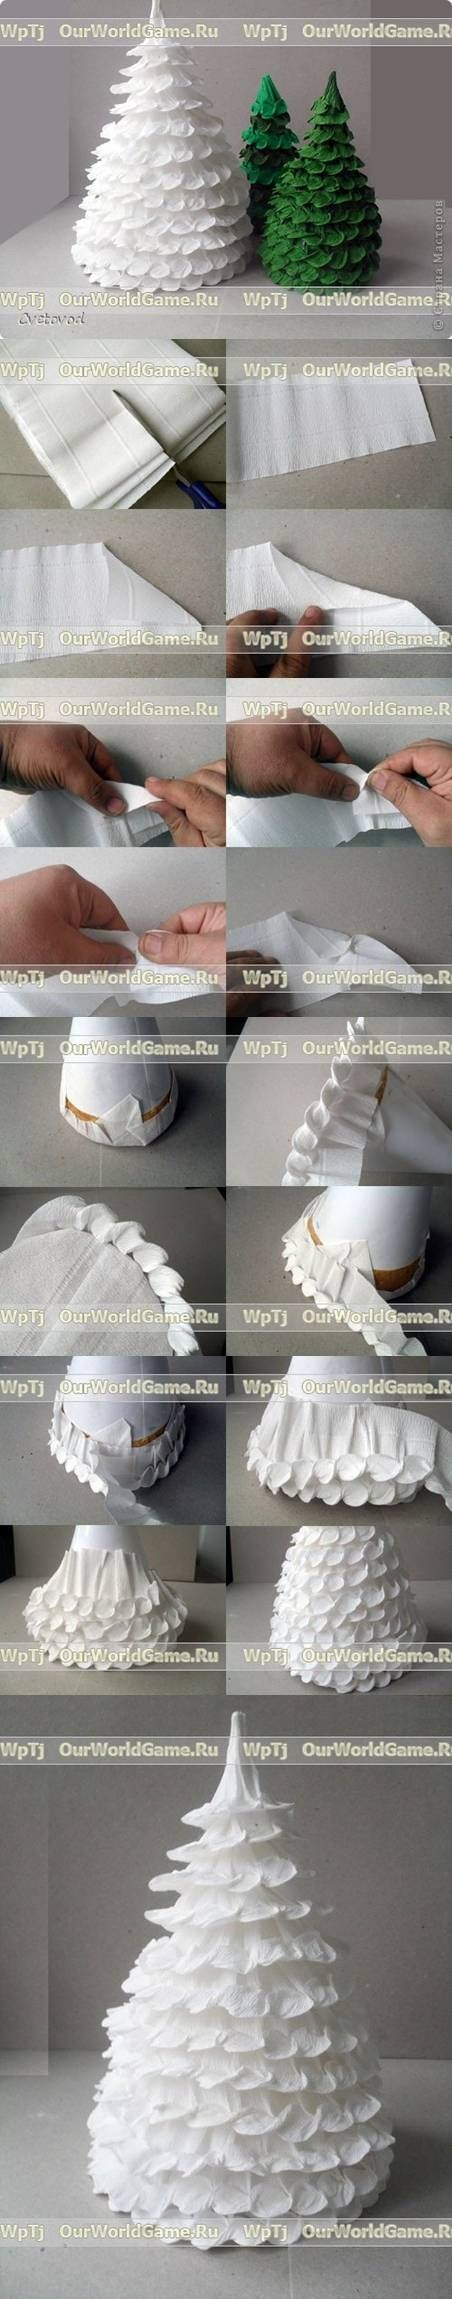 DIY Corrugated Paper Christmas Tree diy how to tutorial